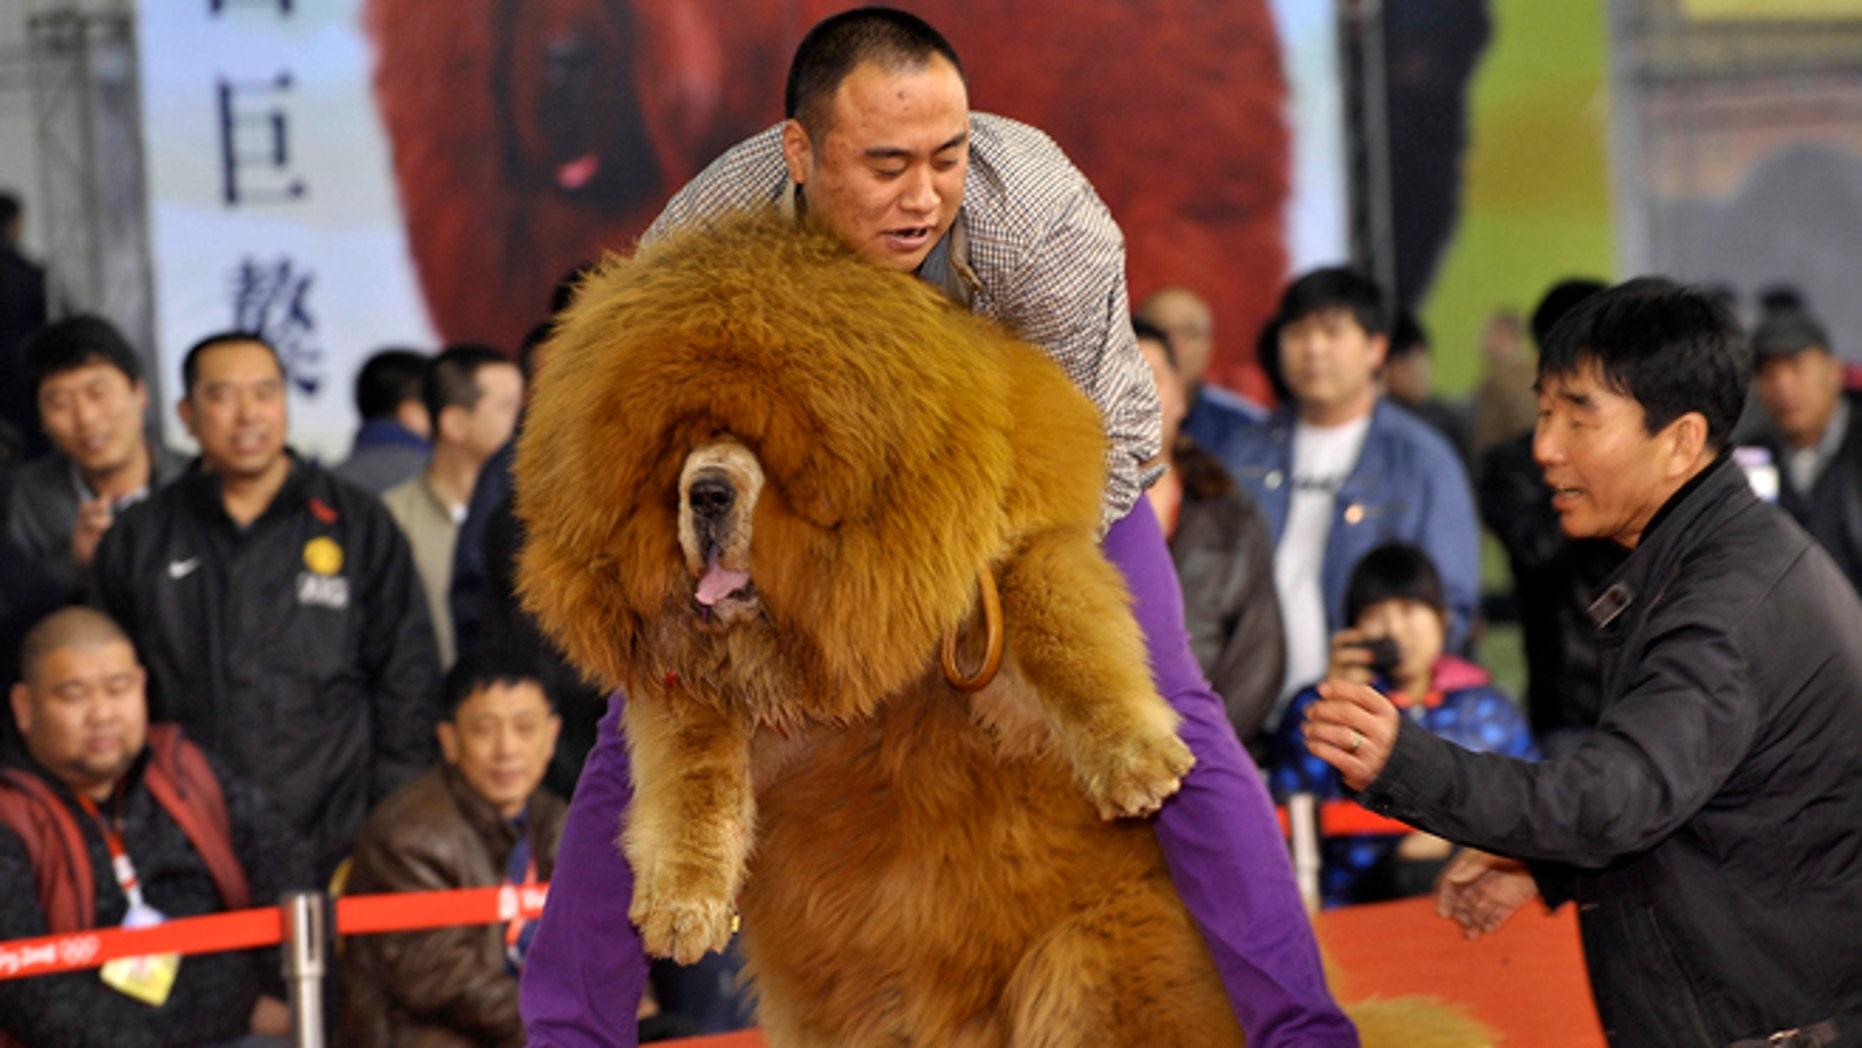 March 23, 2012: A man holds up his Tibetan mastiff as they perform on stage during a dog beauty contest at an exhibition center in Shenyang, Liaoning province.